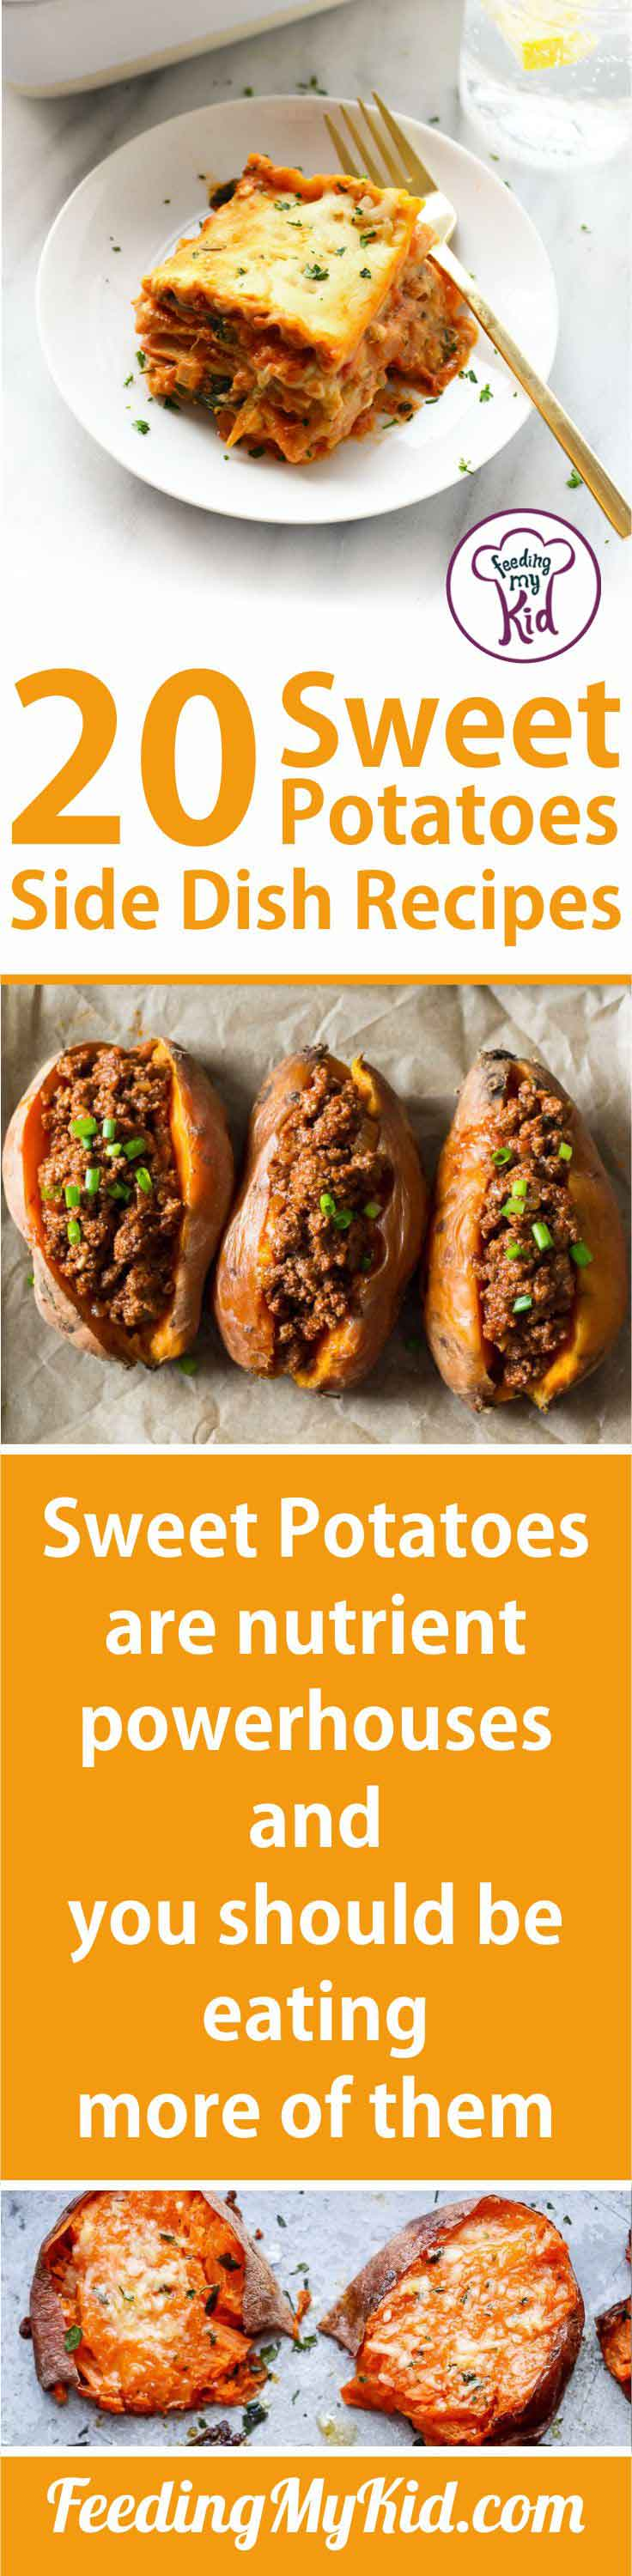 Sweet potatoes are the perfect vitamin-packed, delicious side for any dish. Try one of these sweet potato recipes and fall in love with the sweet potato!